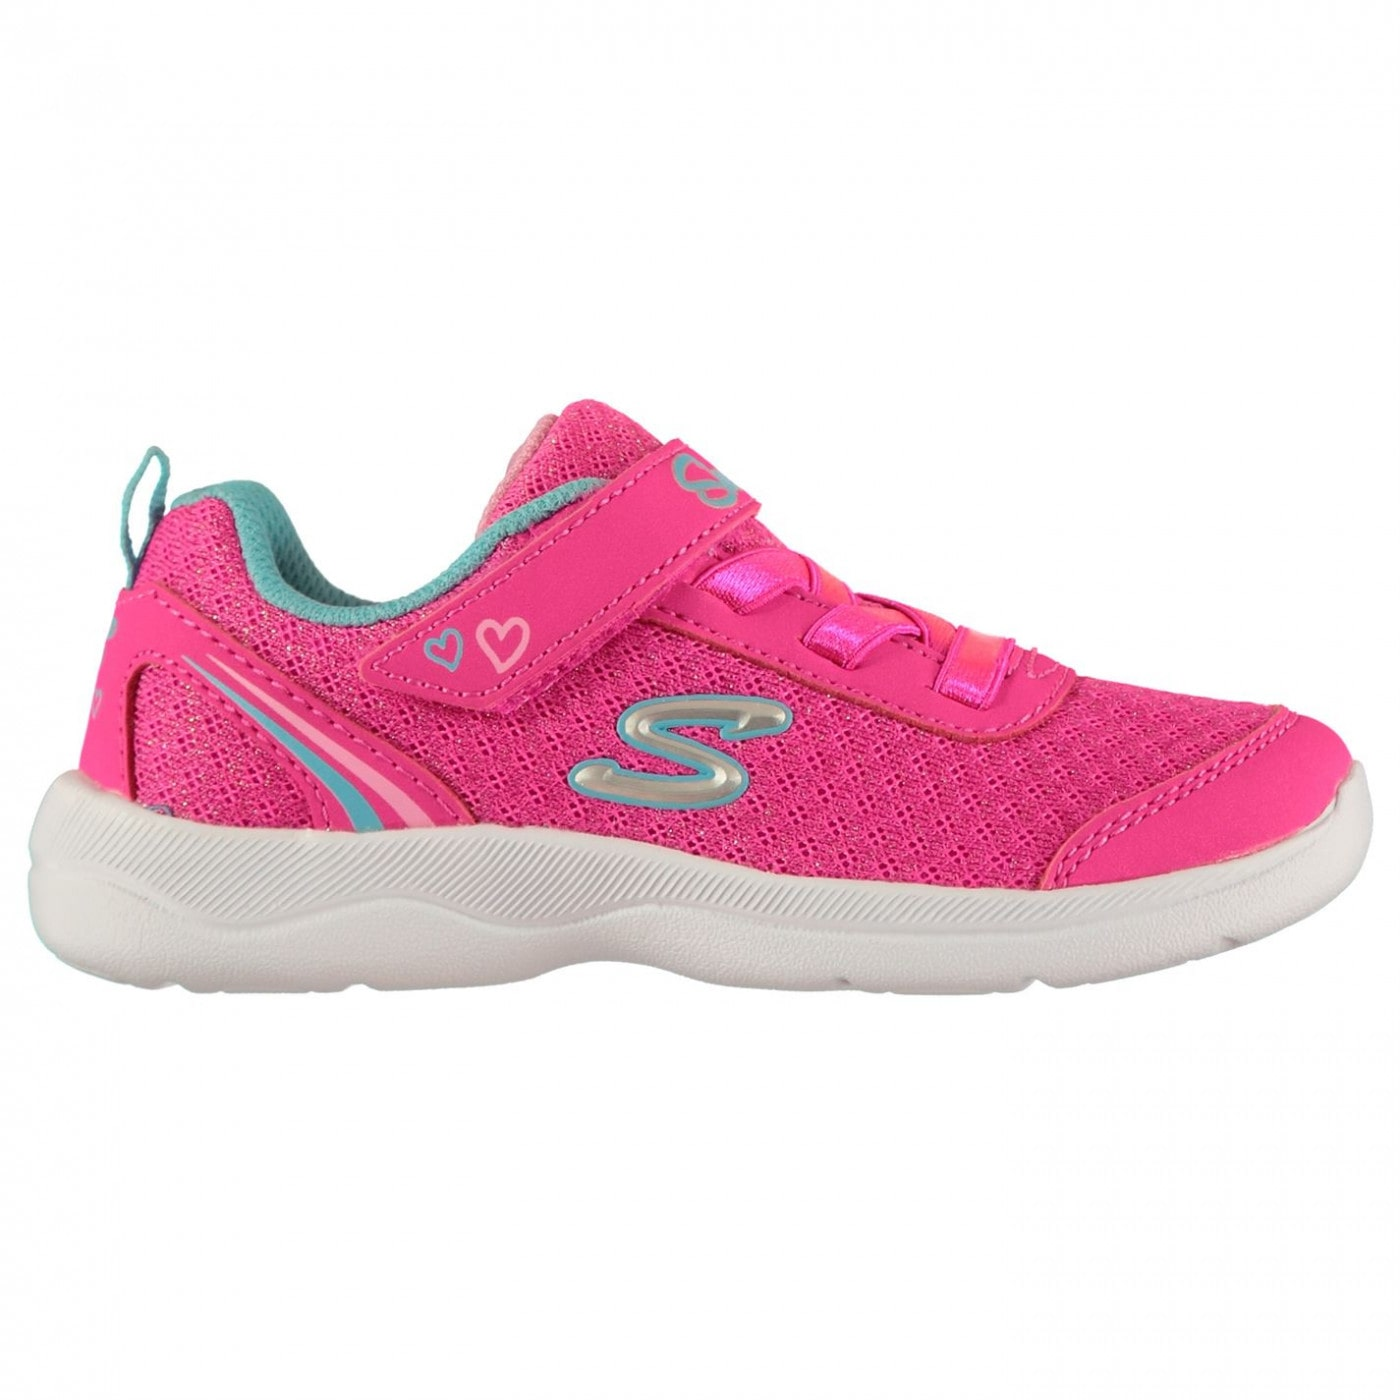 Skechers Sparkle 2 Trainers Infant Girls